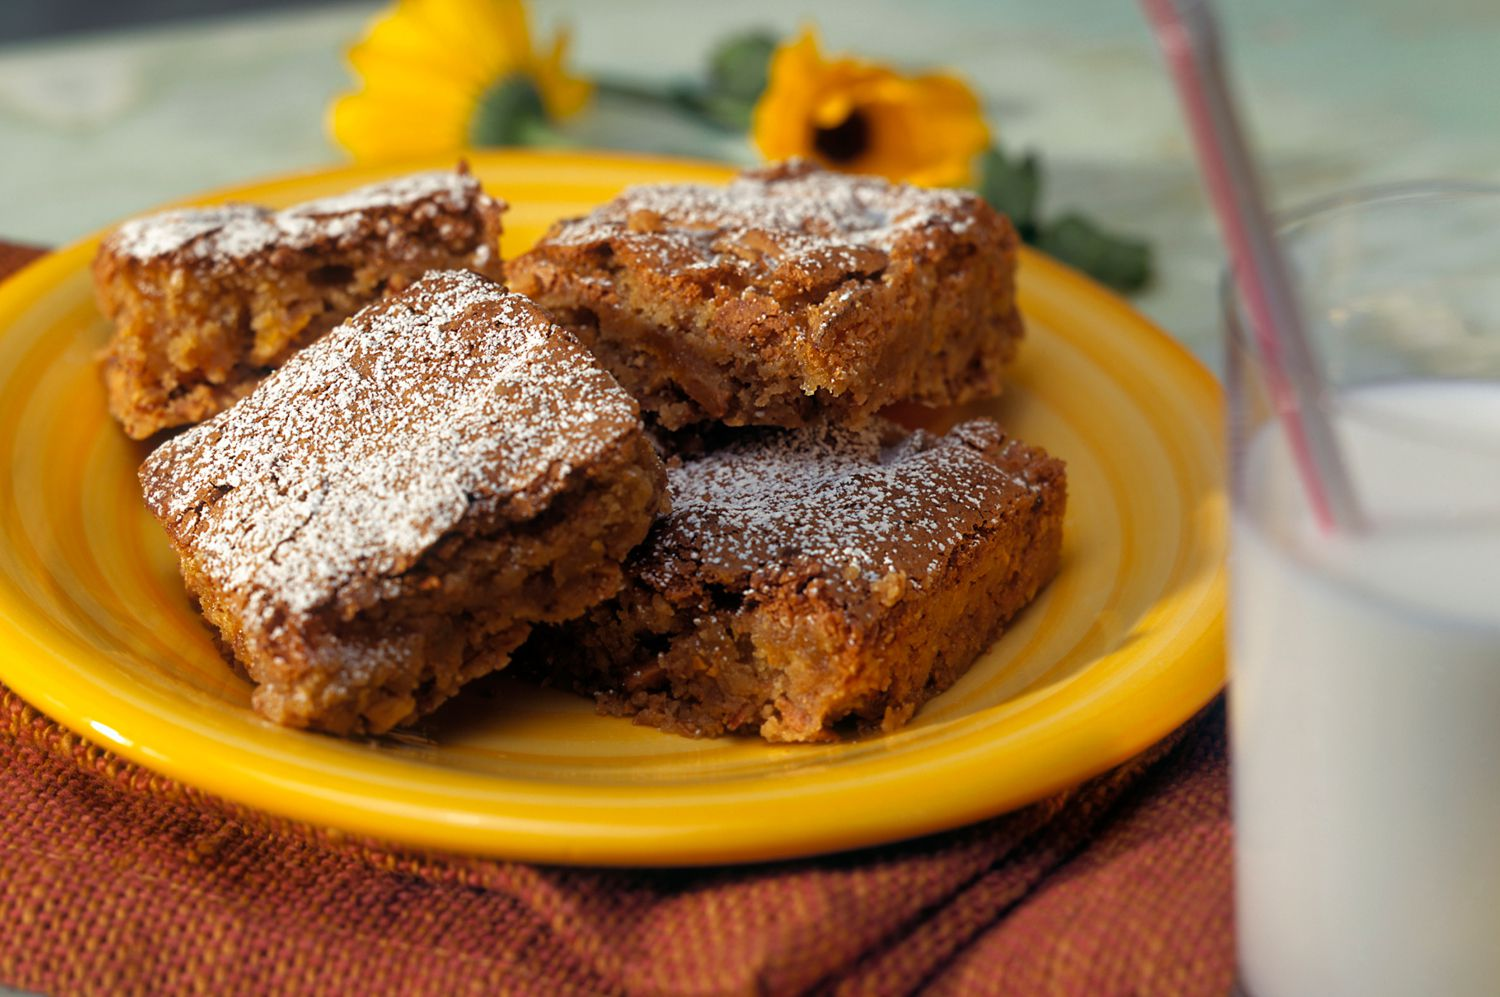 Try This Tasty Apple Brownies Recipe with Pecans